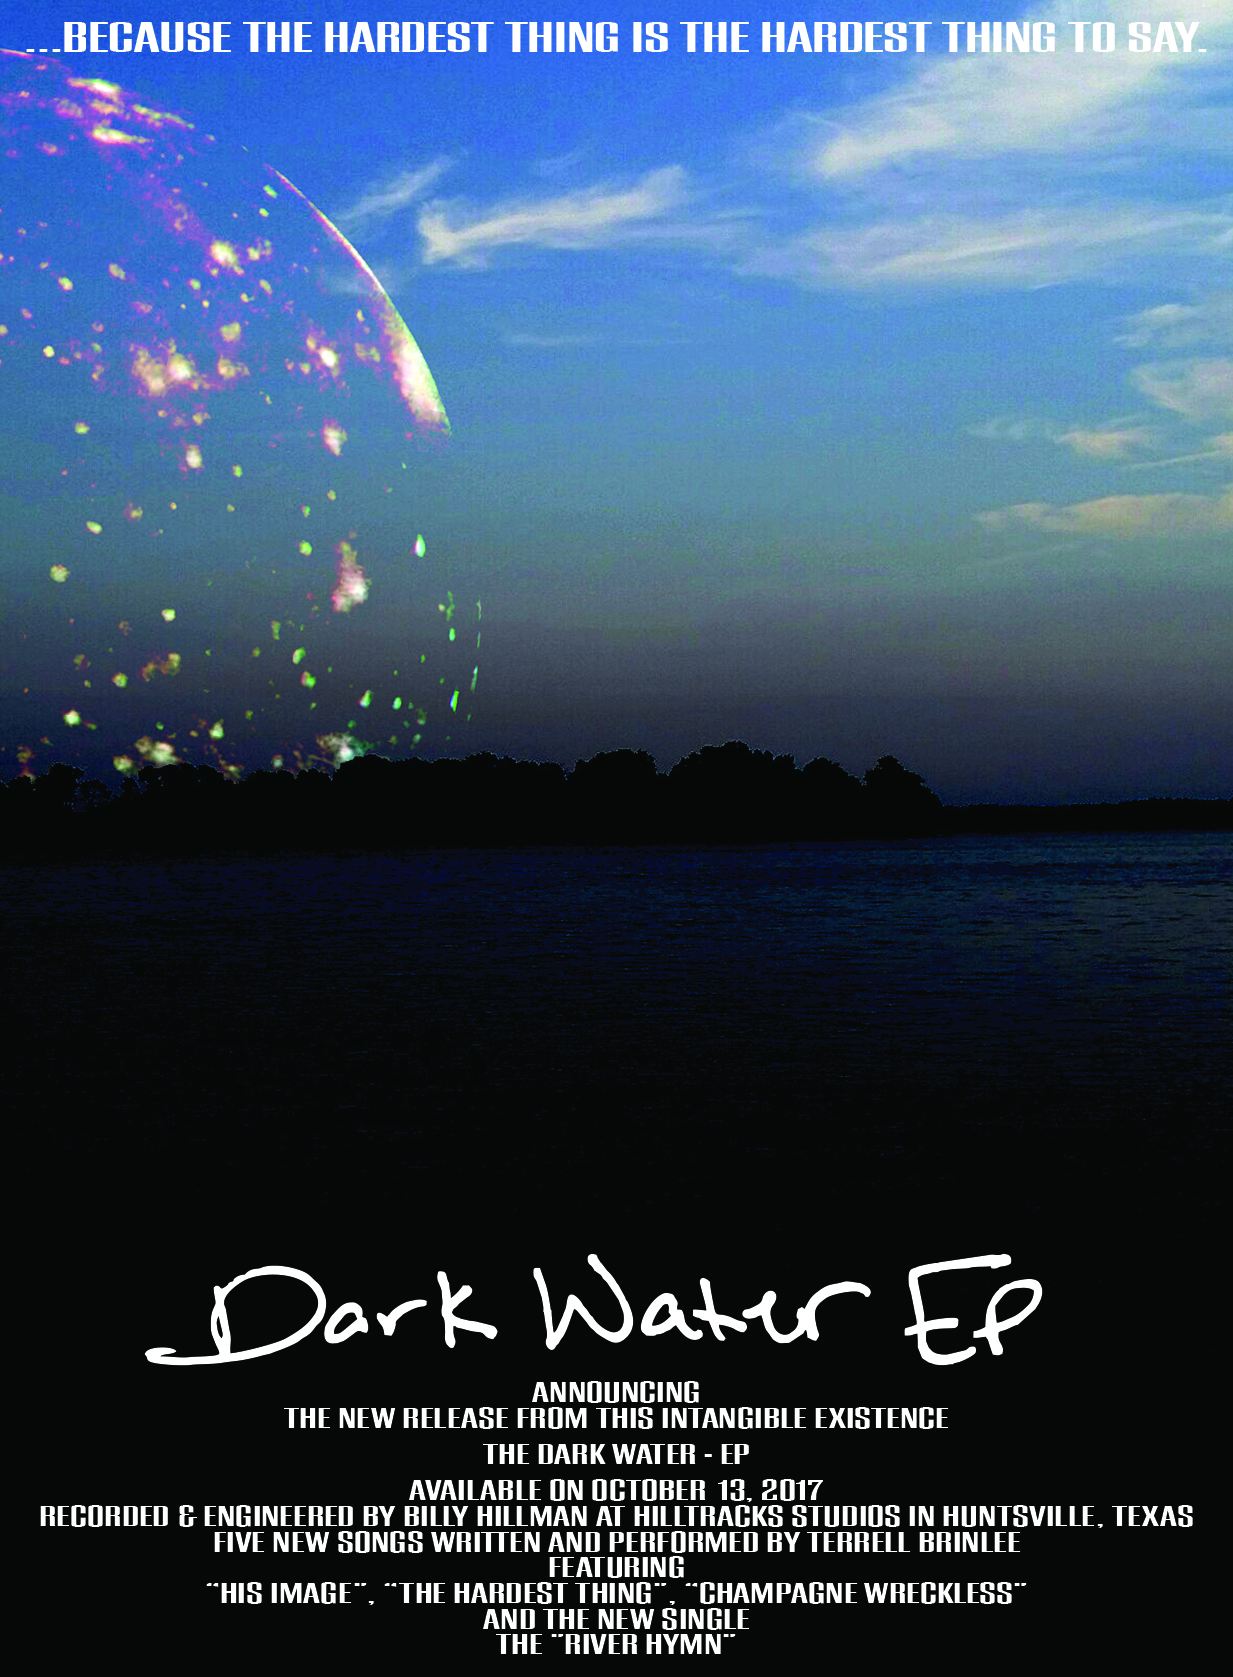 Dark Water EP poster 003 - with typo correction